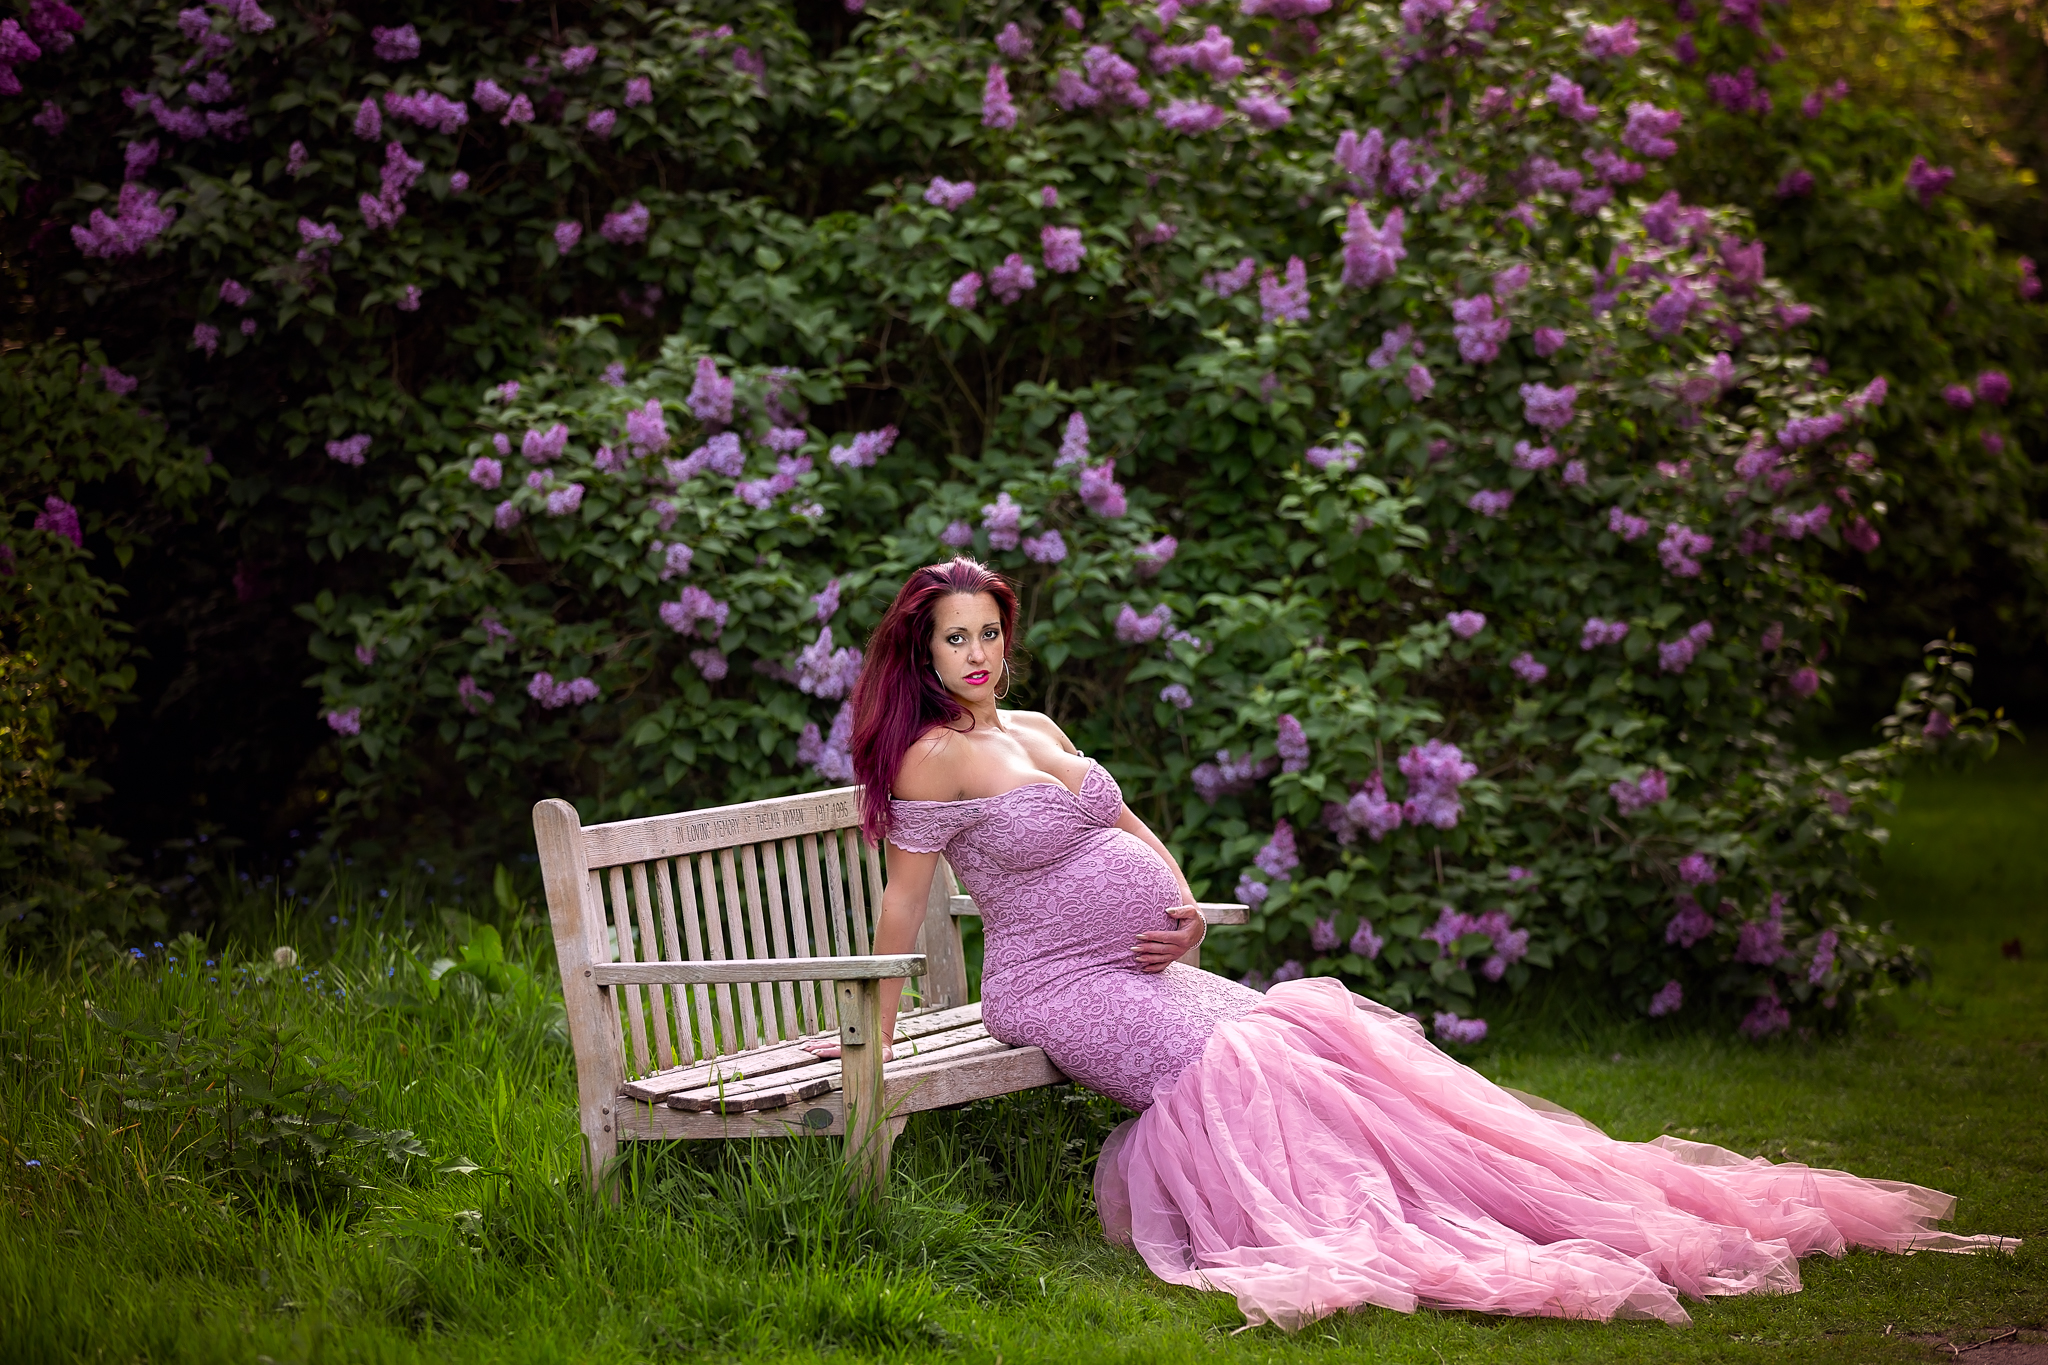 Maternity photographer Leeds-York-Harrogate-Bradford-Wakefield: beautiful pregnant woman in a stunning pink dress during her pregnancy photoshoot in Leeds, West Yorkshire